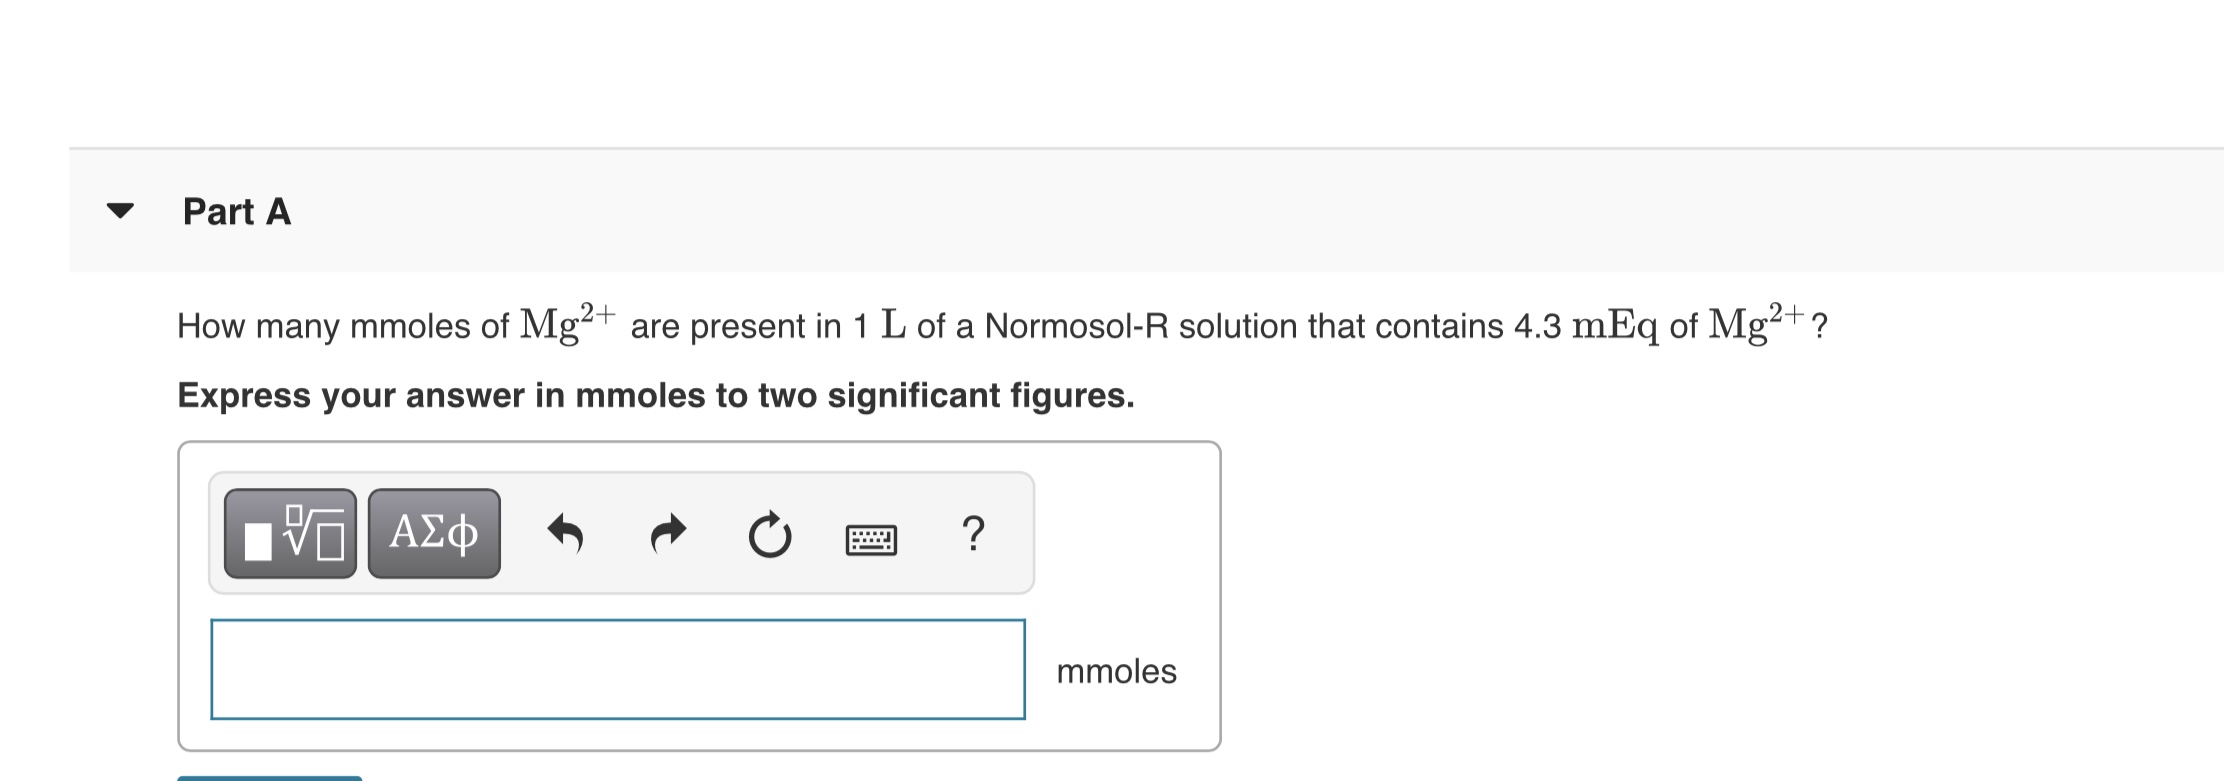 Part A How many mmoles of Mg2+ are present in 1 L of a Normosol-R solution that contains 4.3 mEq of Mg²+ ? Express your answer in mmoles to two significant figures. ΑΣφ mmoles